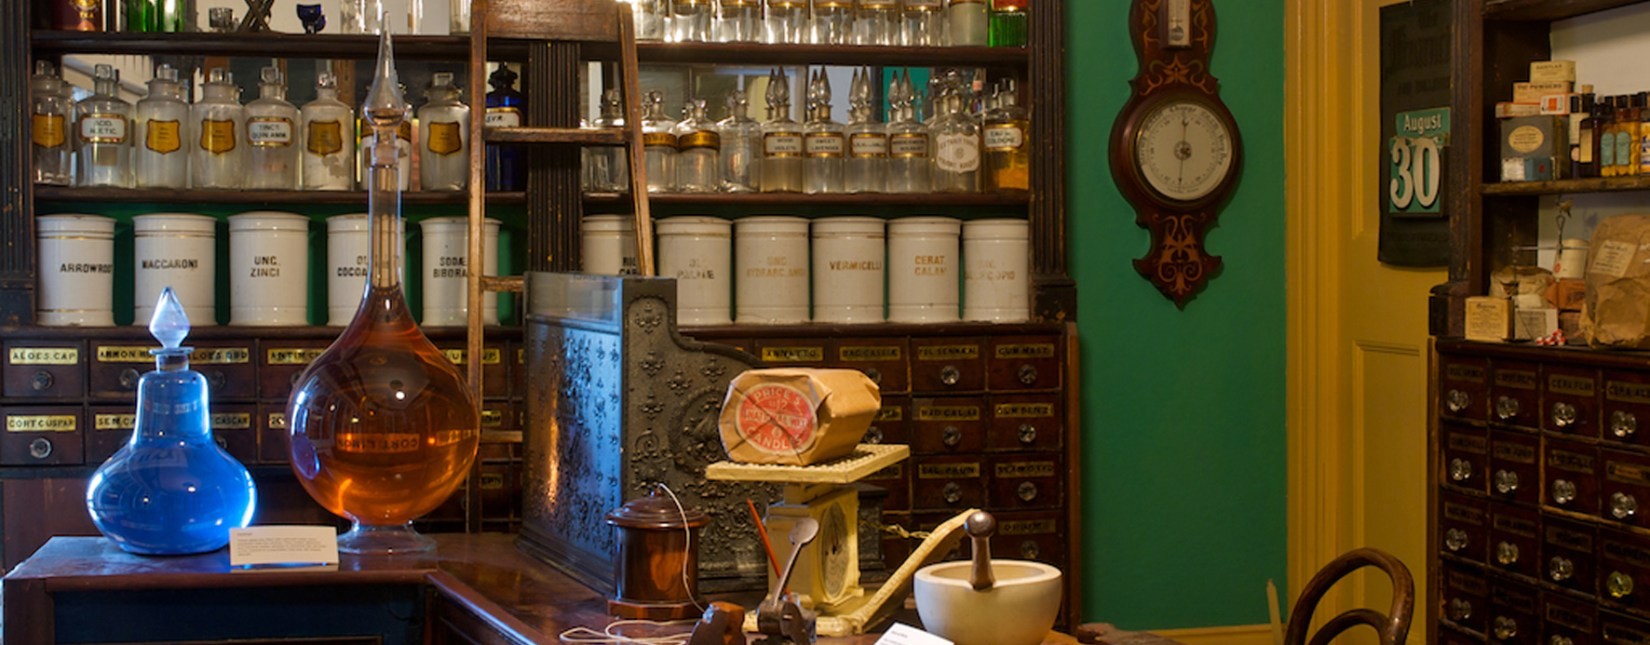 The chemist shop in the Museum of Lakeland Life and Industry Kendal